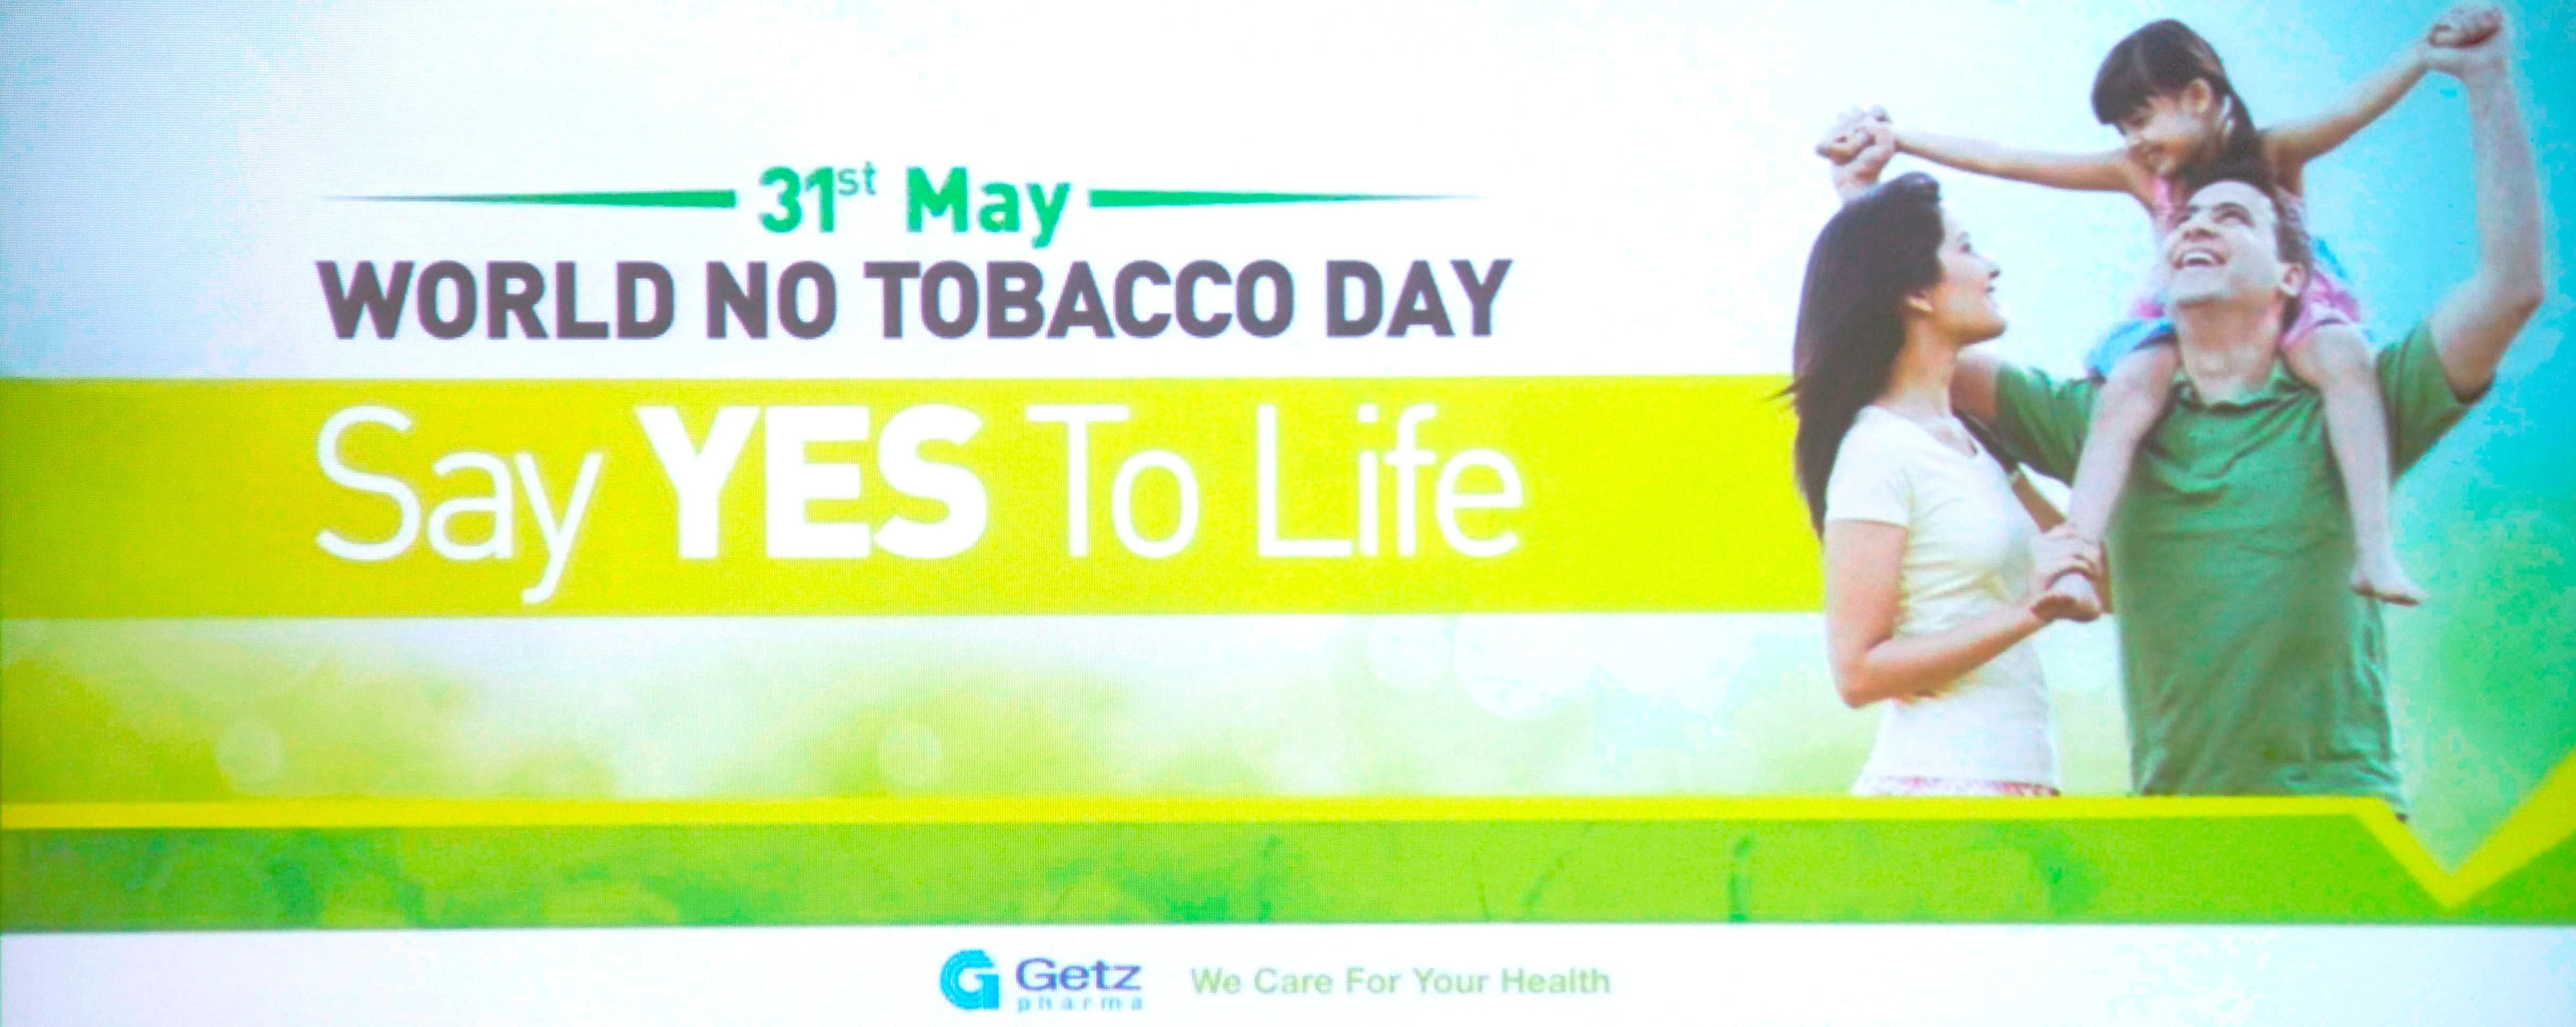 31st May World No Tobacco Day Say Yes To Life Poster